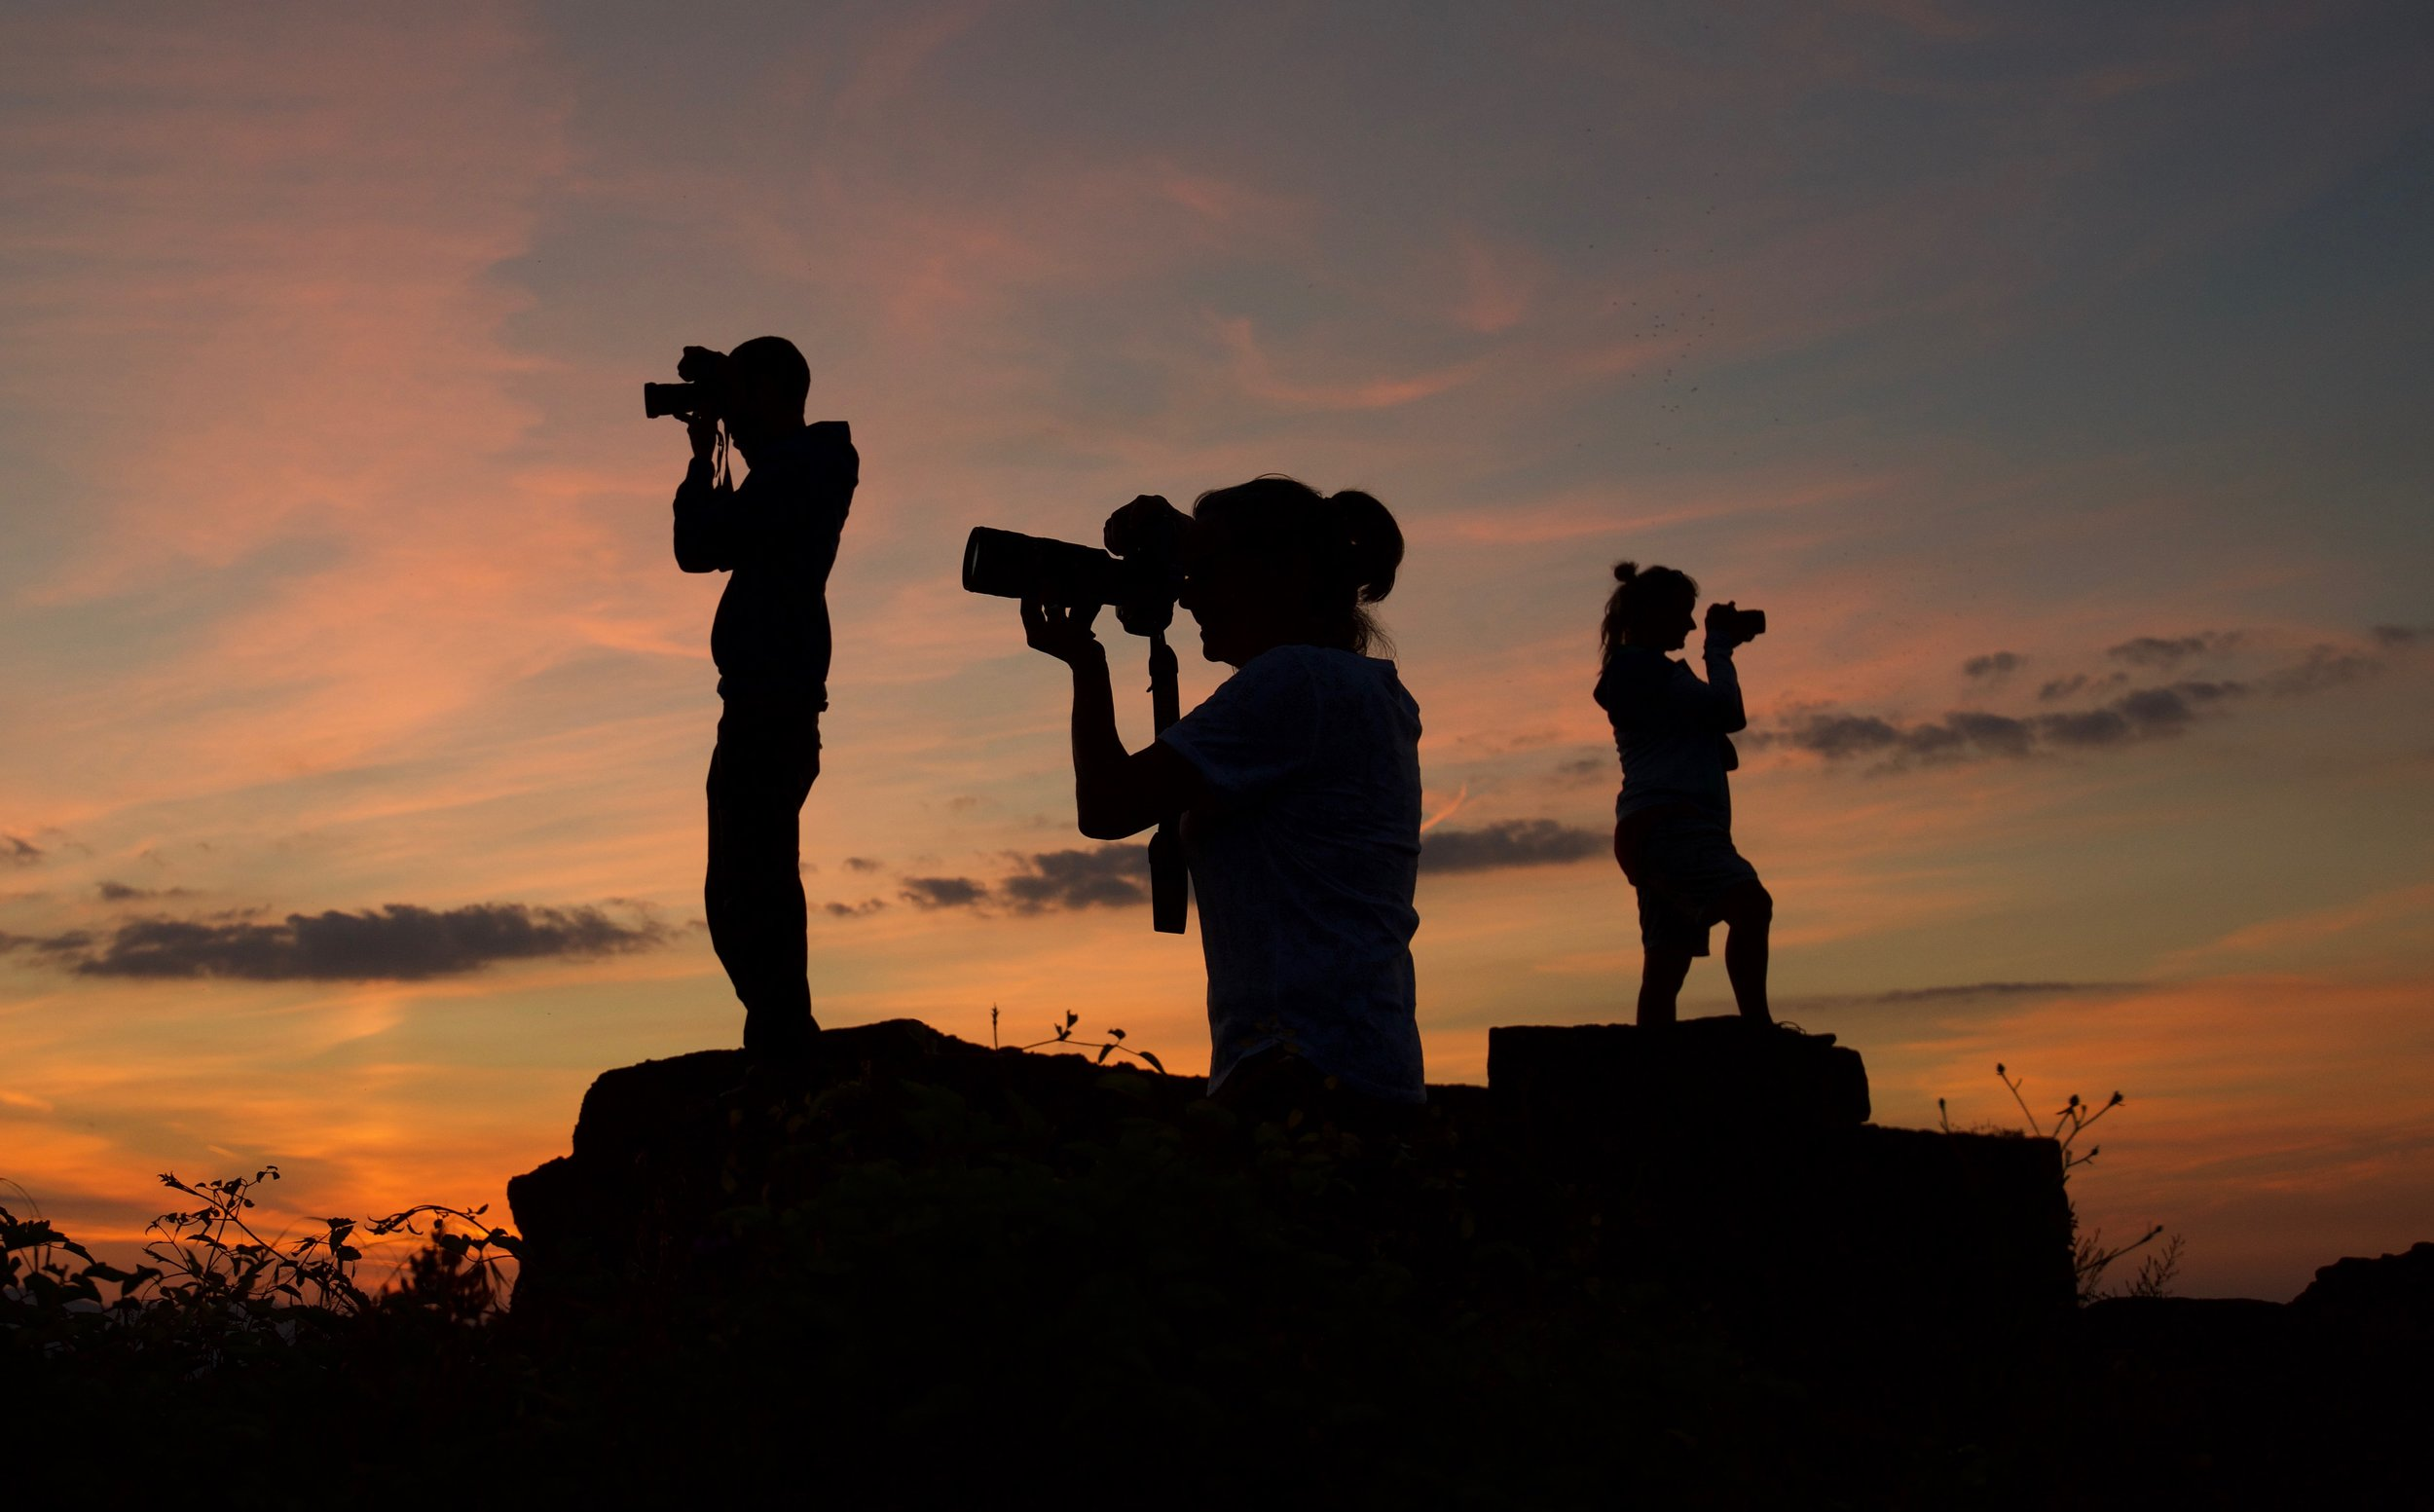 photographers-sunset-colourful-belogradchik-bulgaria-phototour-northloop-alison-2017-MKH6063.jpg